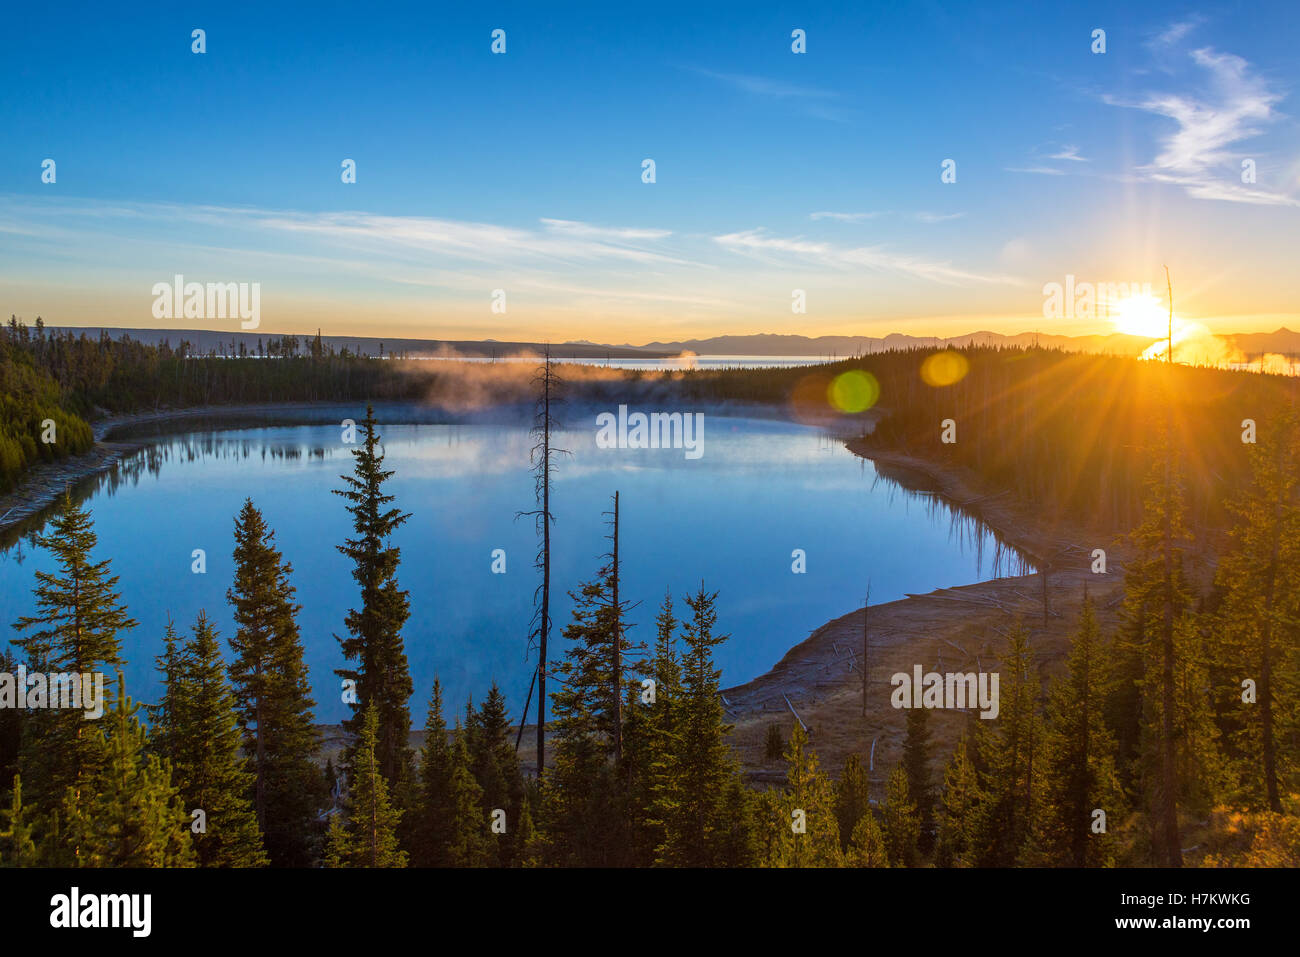 Sunrise over Yellowstone Lake in Yellowstone National Park in Wyoming - Stock Image